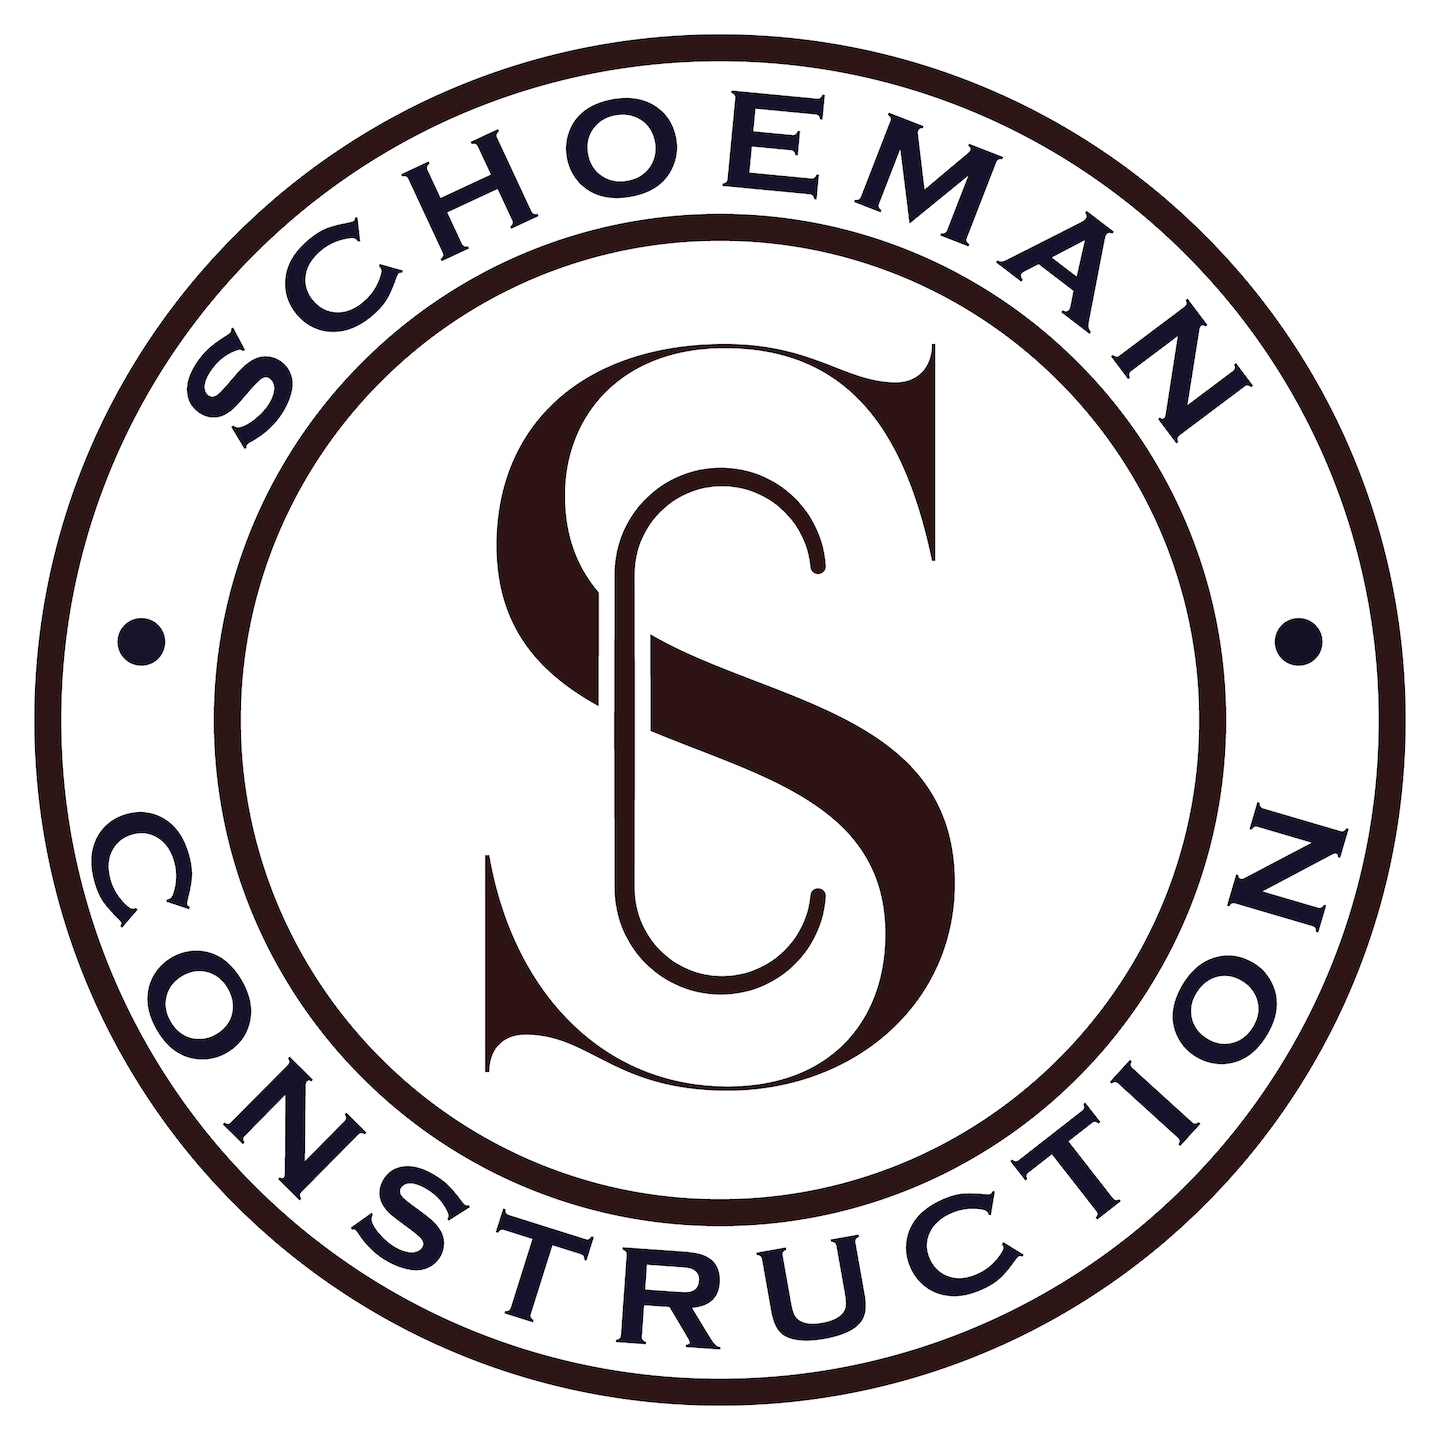 Schoeman Construction